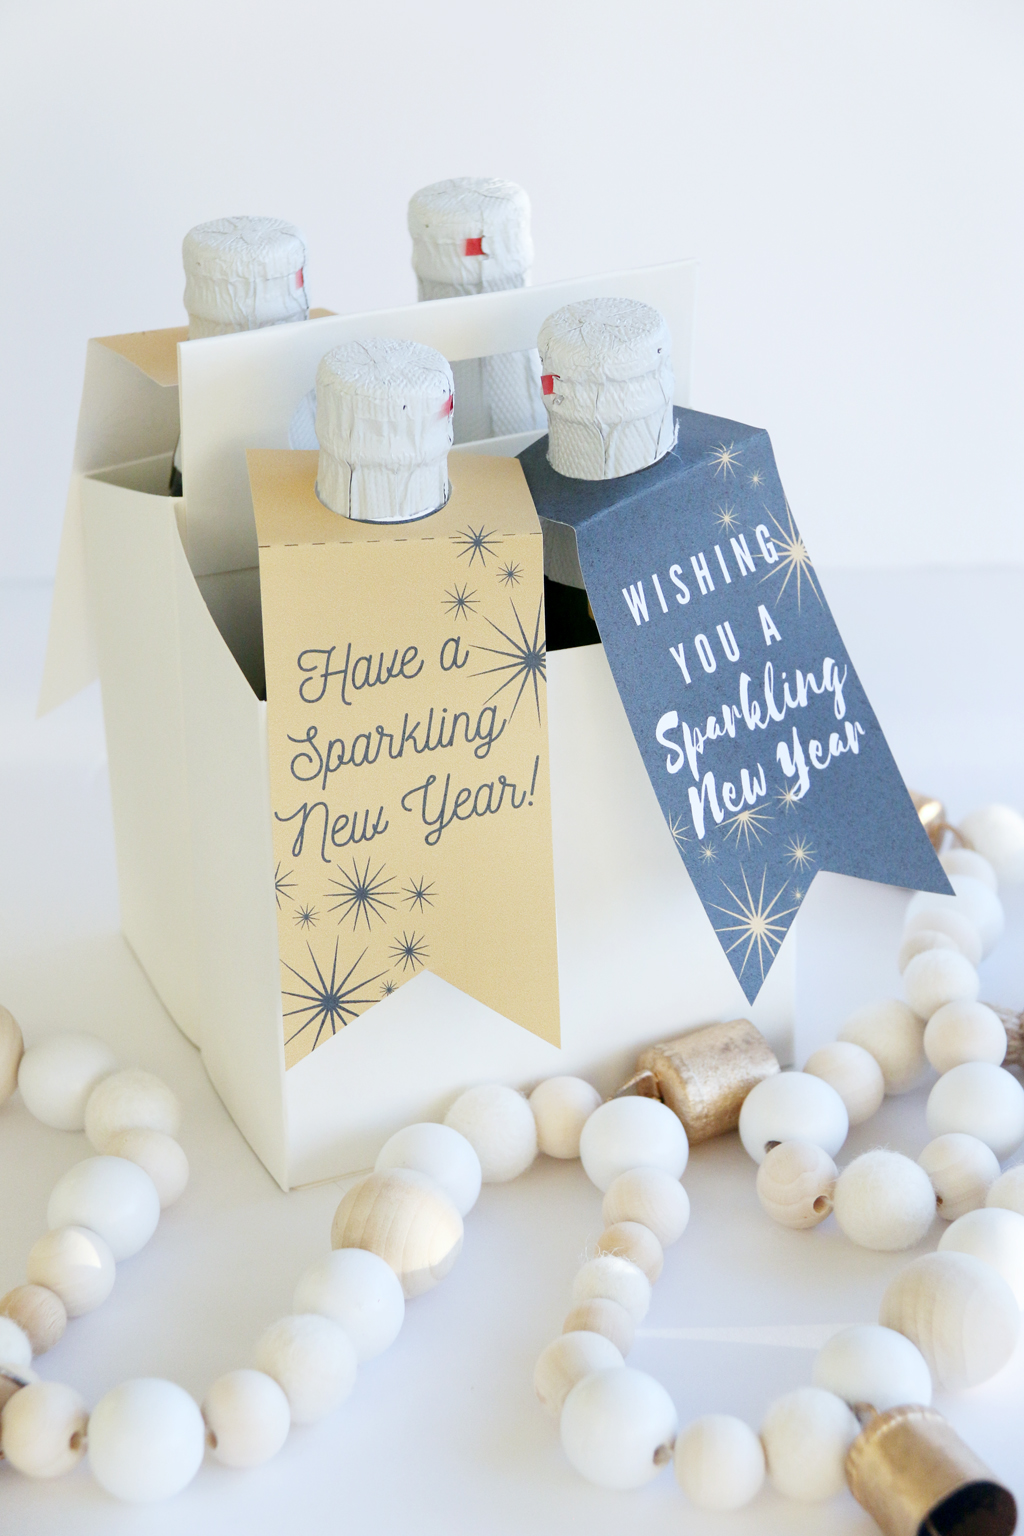 Small drink caddy filled with 4 bottles of sparkling cider with gift tags on them.